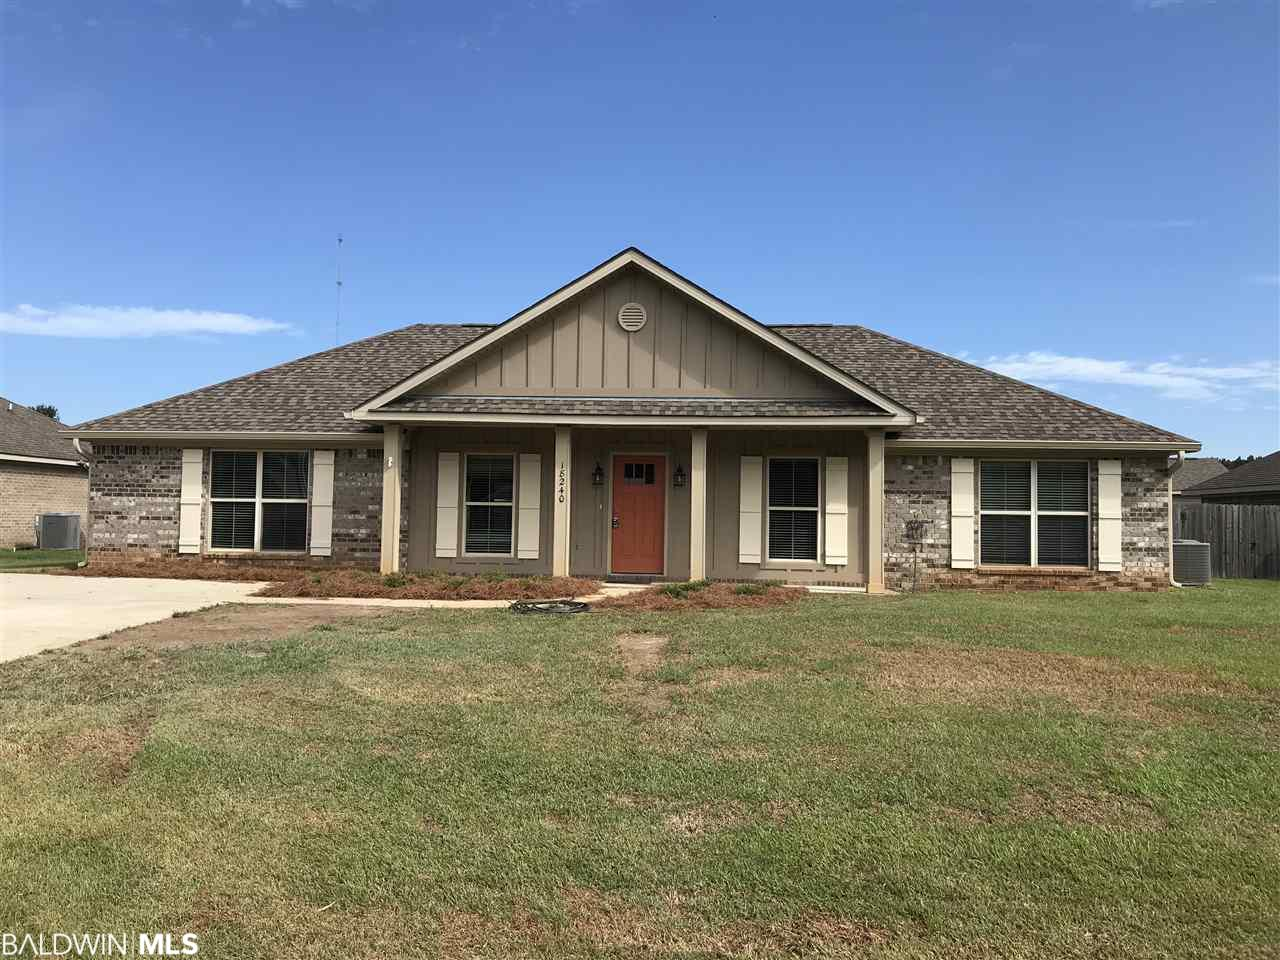 18240 Outlook Dr, Loxley, AL 36551